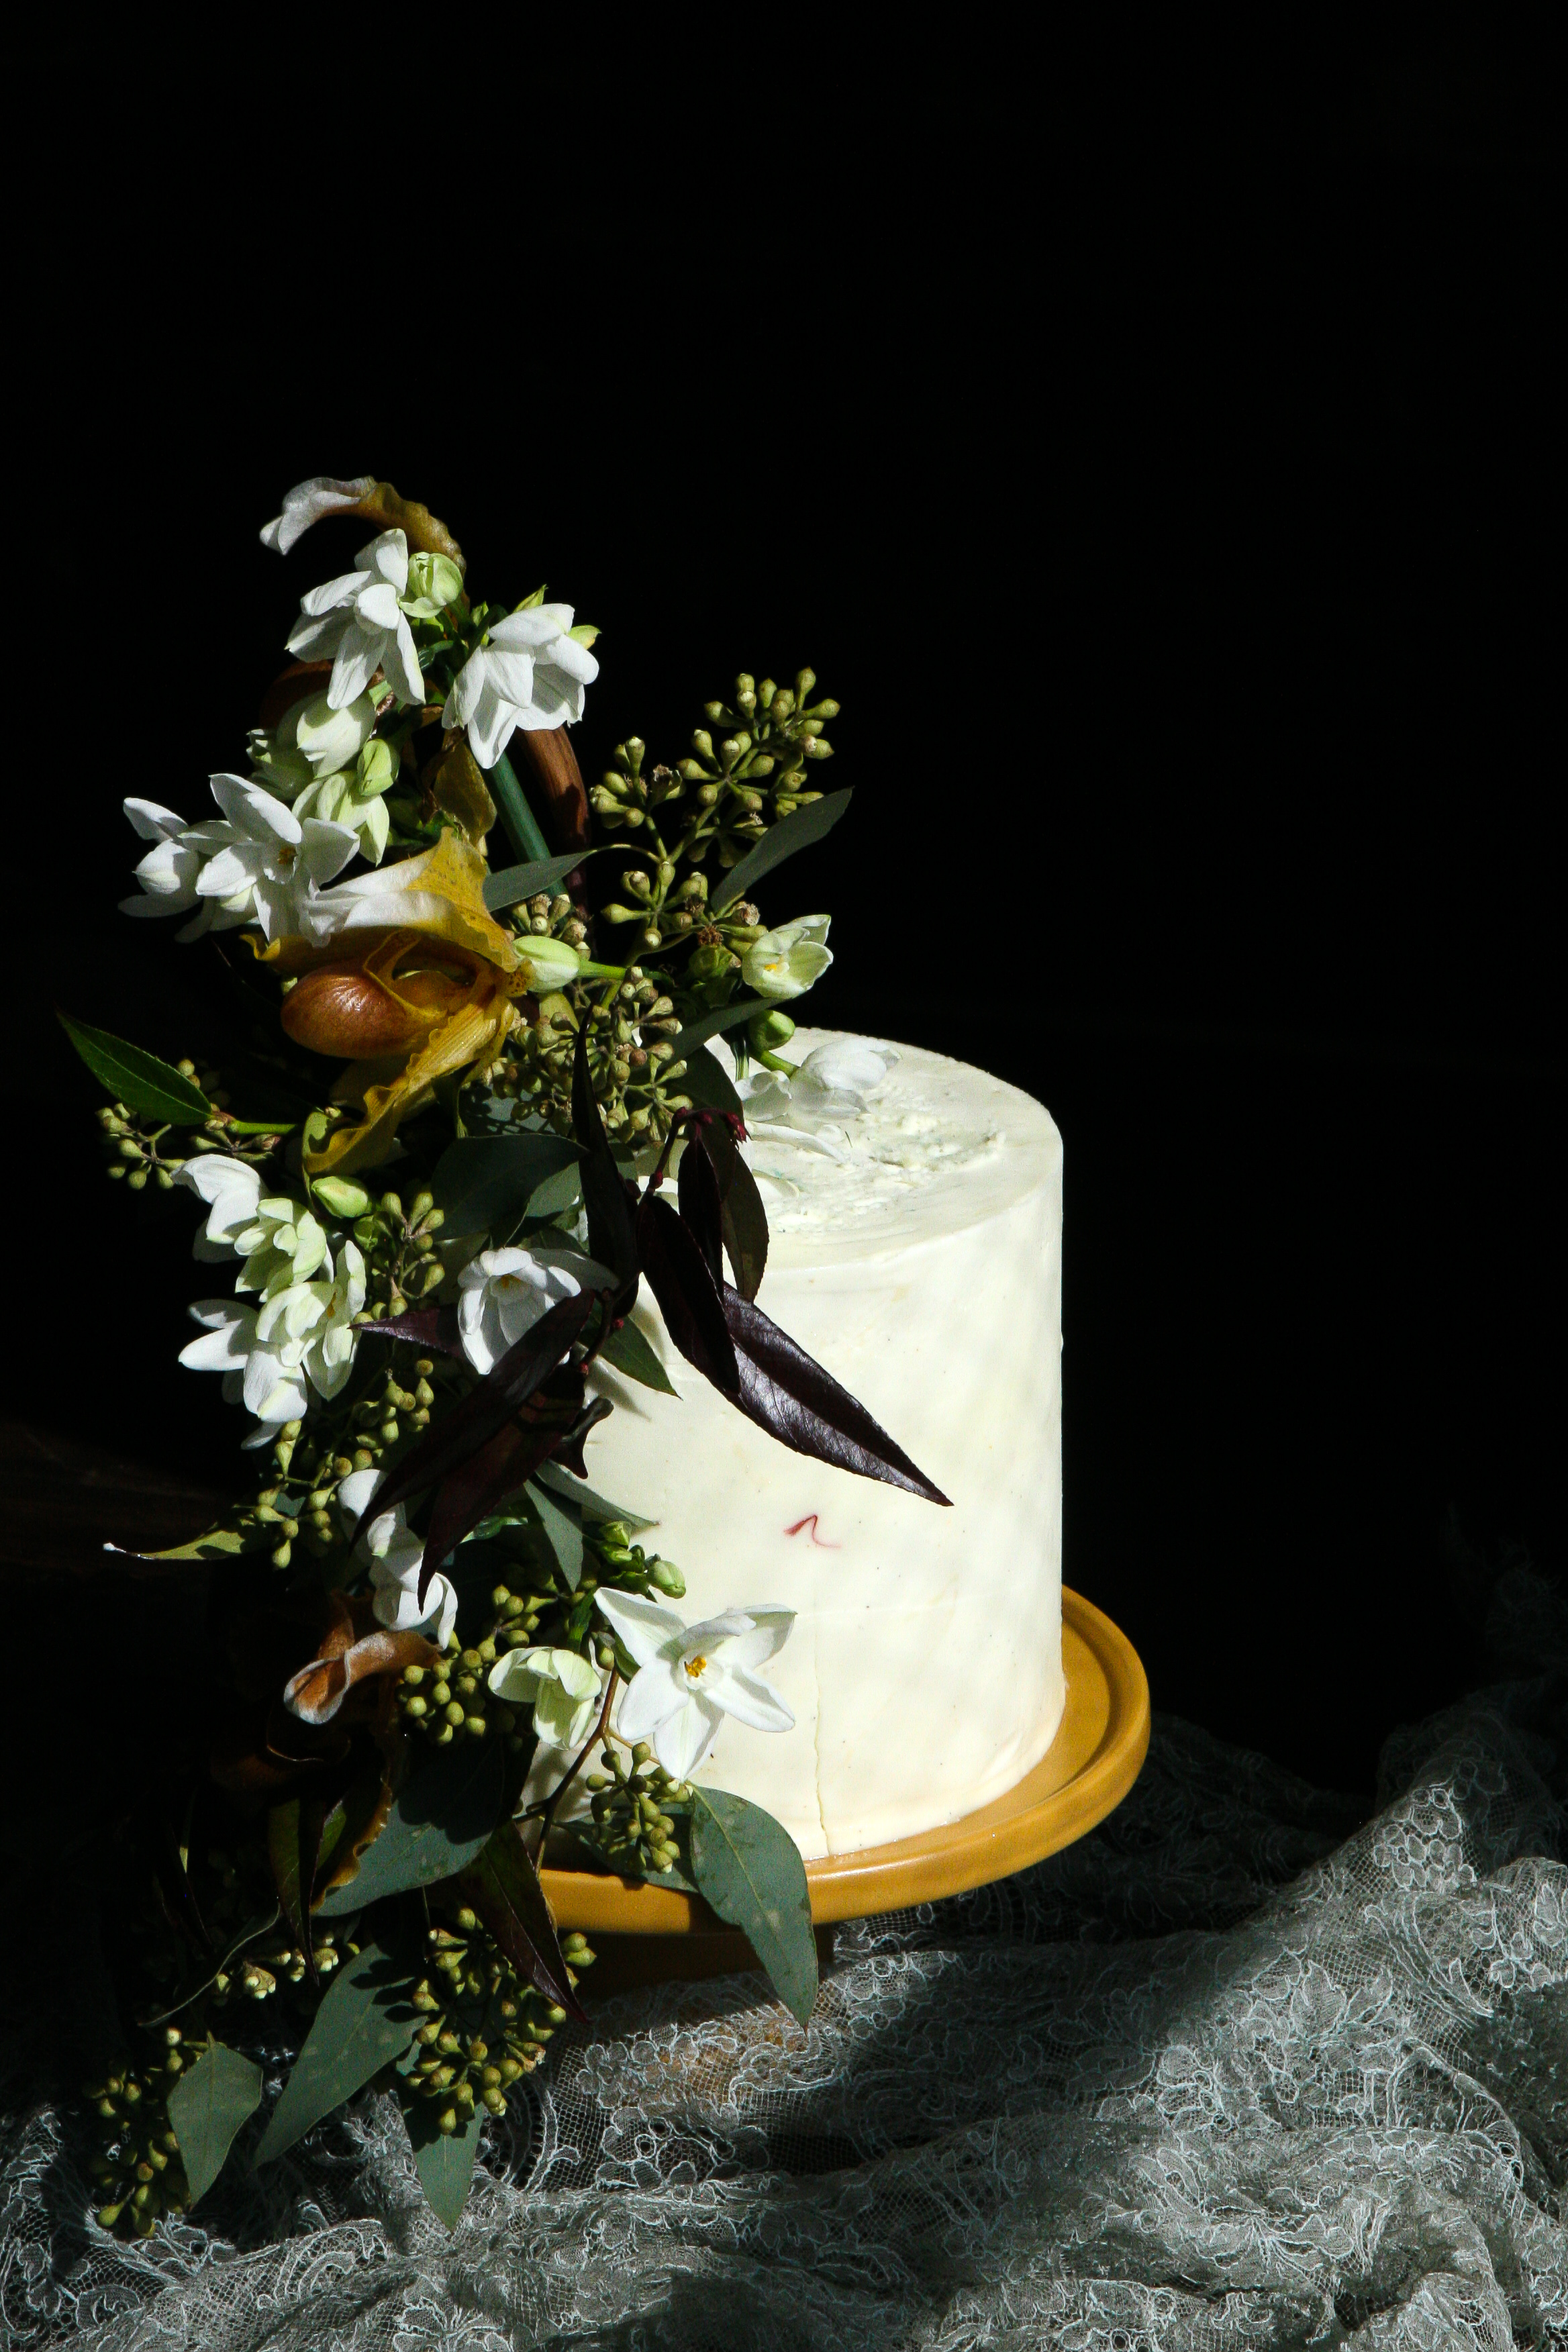 - Being gluten or dairy free often means missing out on celebratory treats for those special occasions that matter most. Birthdays, weddings, dinner at home on Tuesday night - no matter the reason, you deserve the simple pleasure of a festive cake.